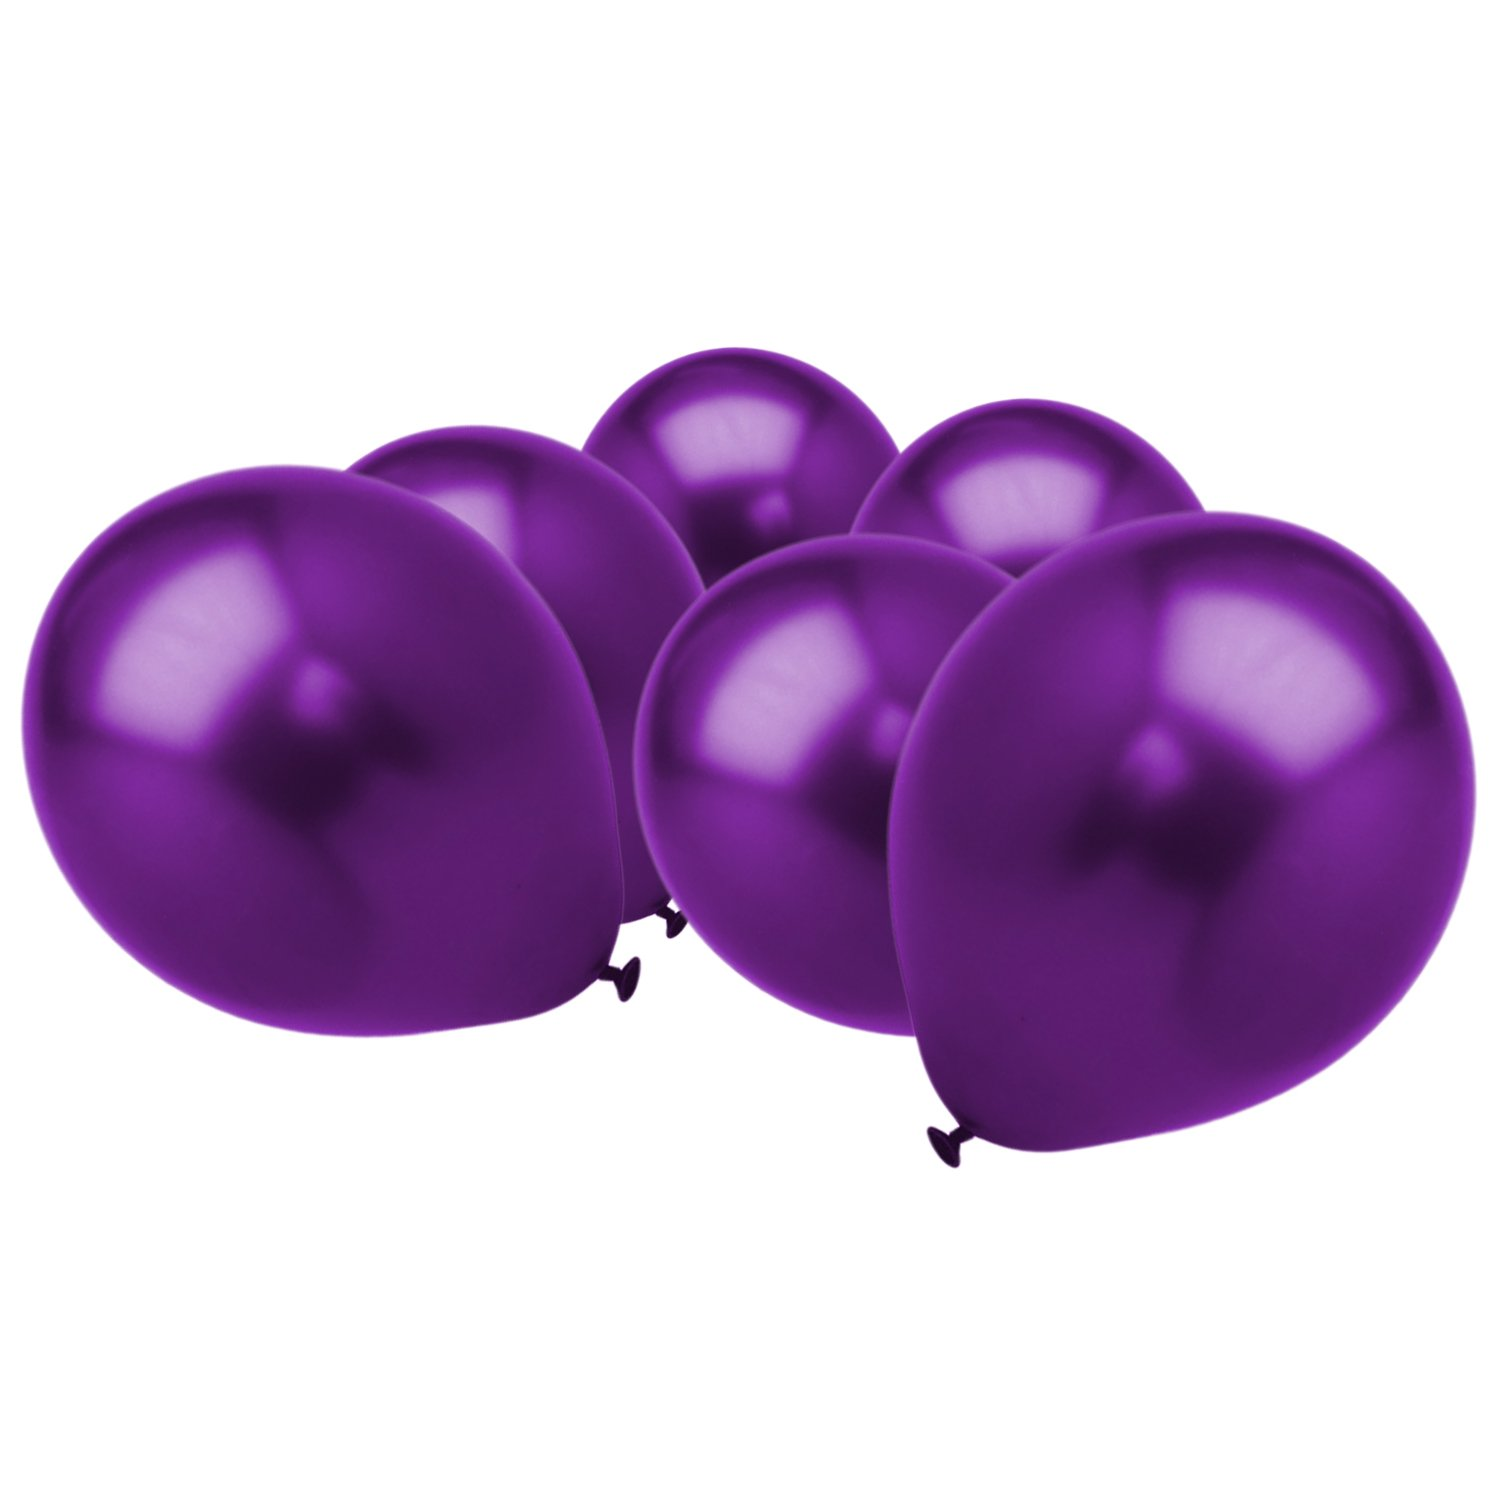 1000 Pack 12Inch High Quality Metallic Cadbury's Purple Latex Party Balloons (1000 Pack)